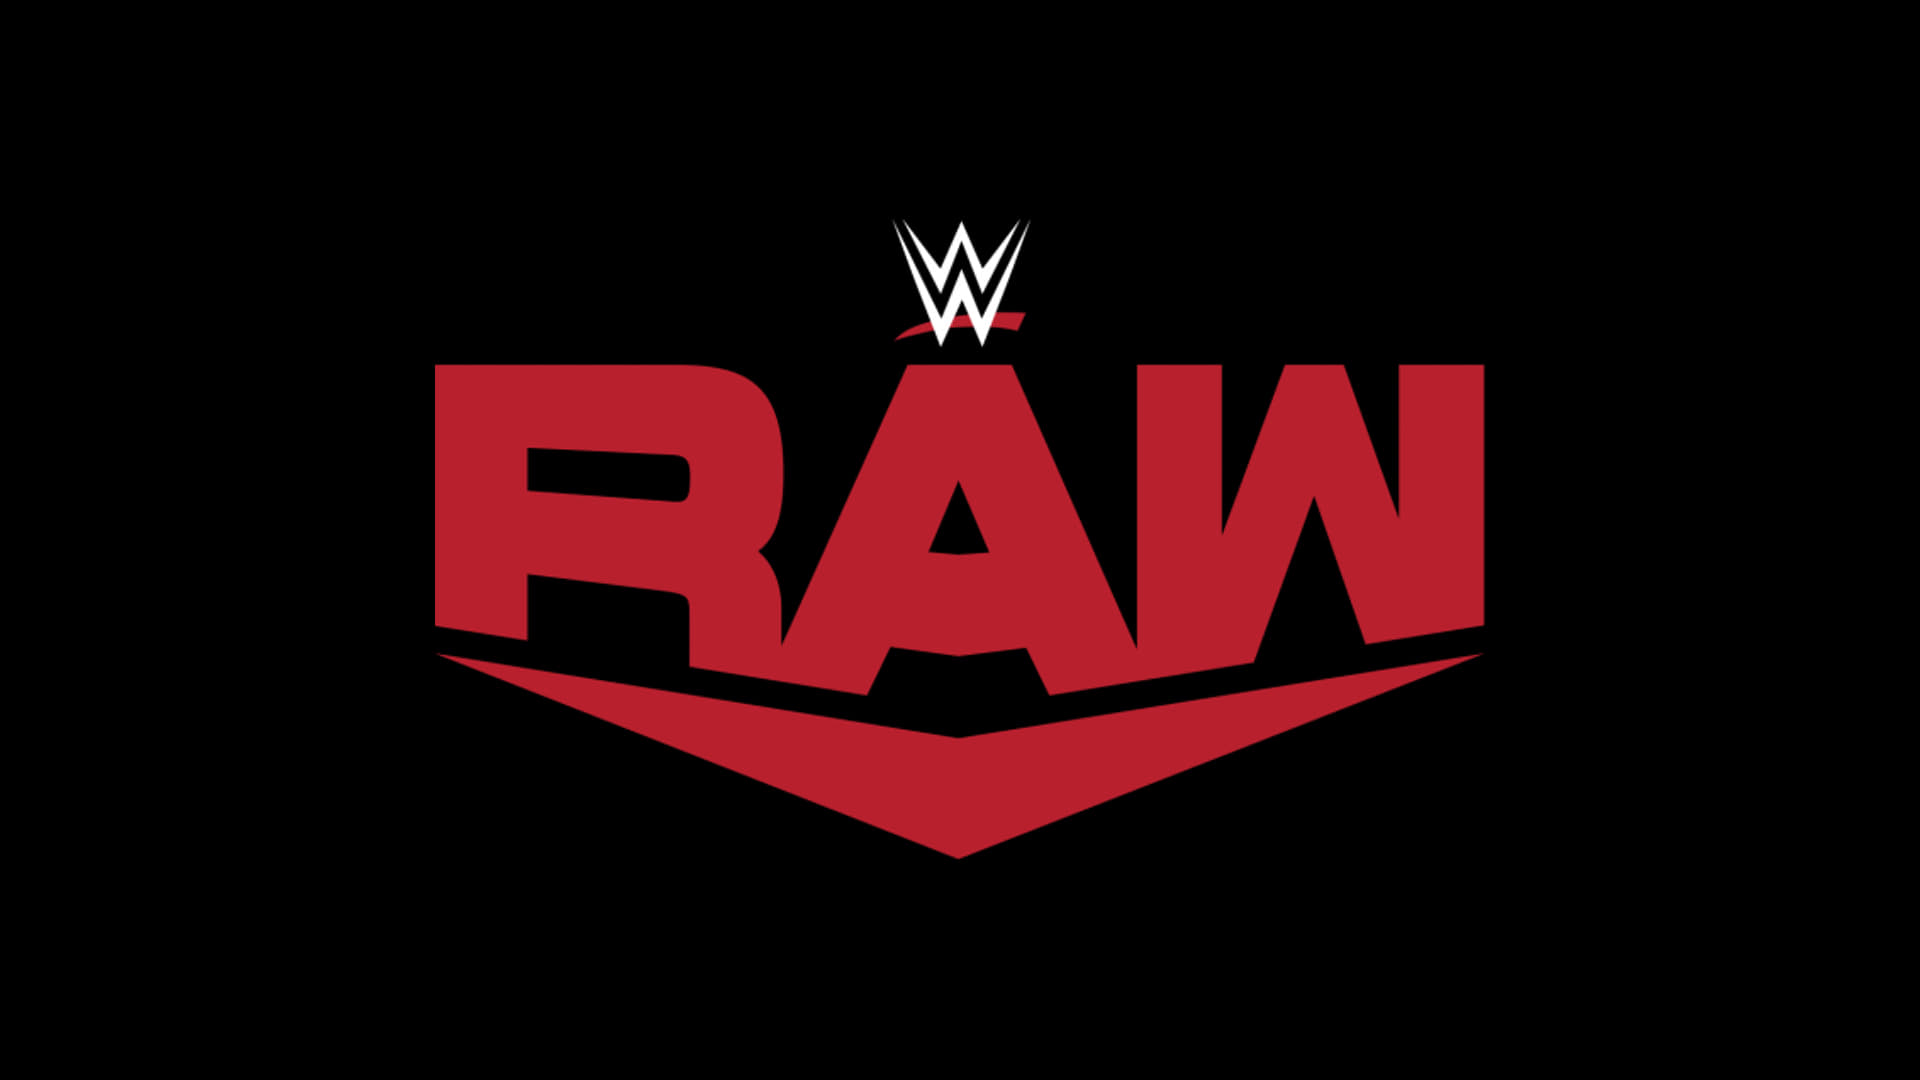 WWE Raw - Season 15 Episode 52 : Episode #764 / Tribute to the Troops